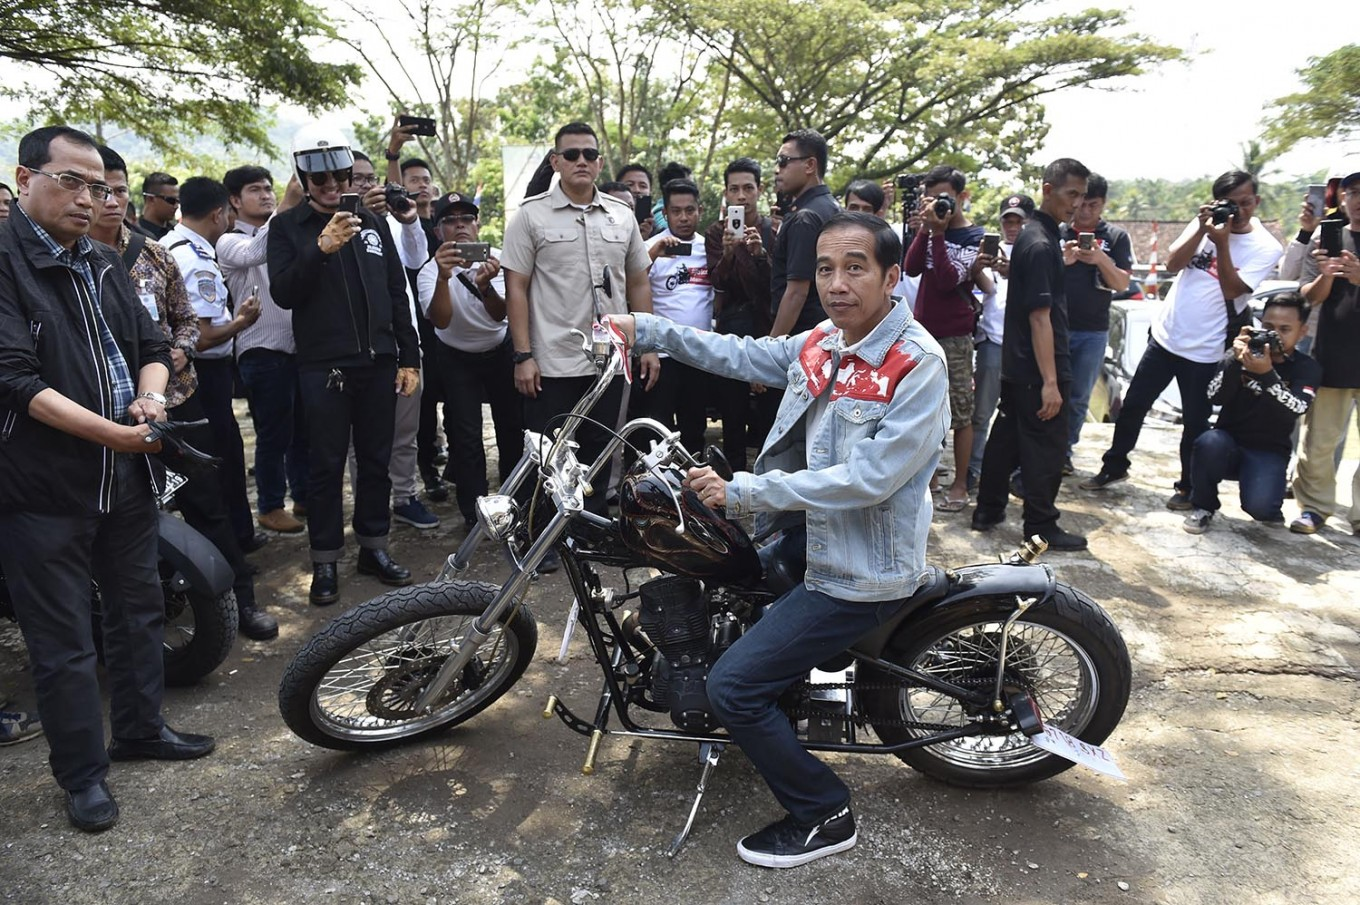 Commentary: Of horses, motorcycles and rivalry between men